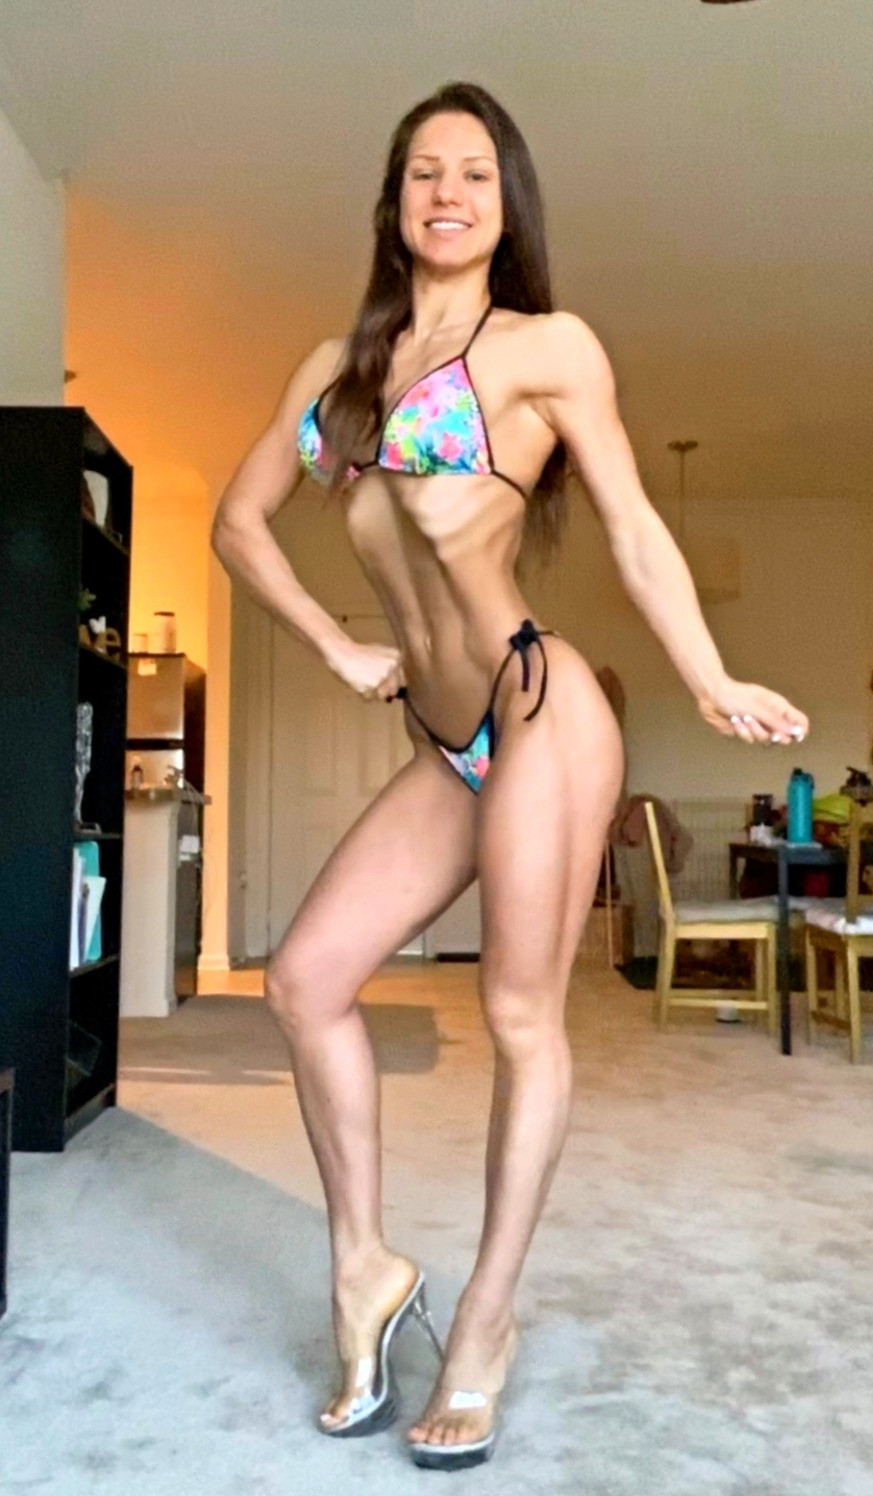 1 Week Before Competition